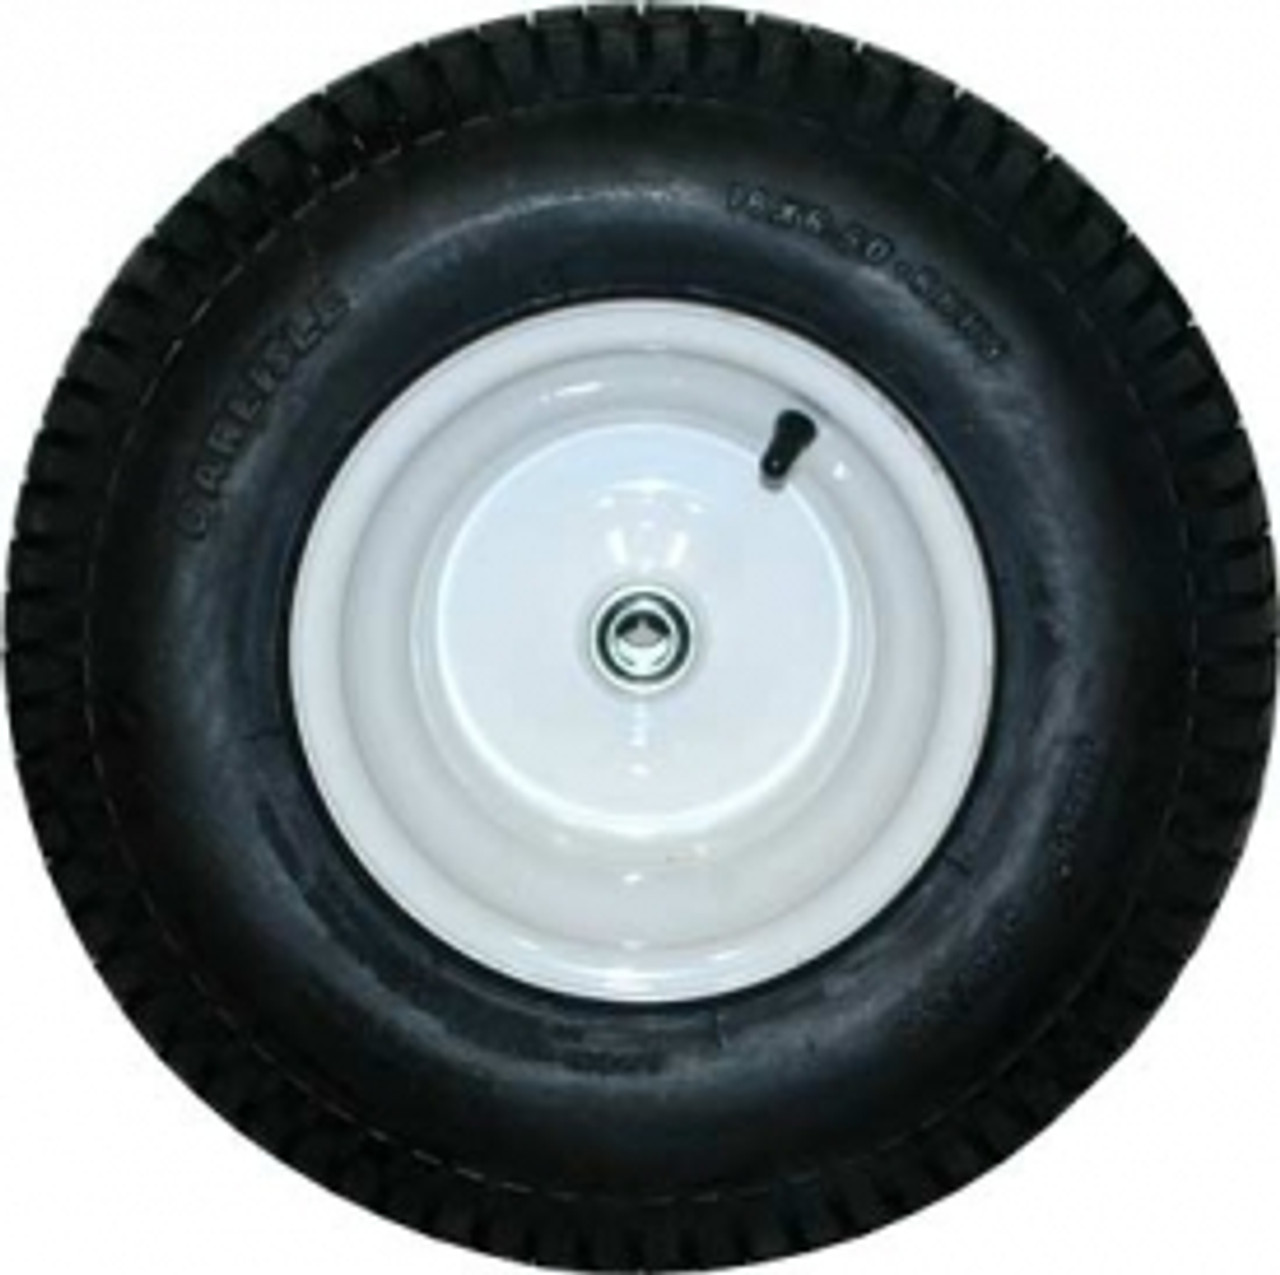 "Replacement parts 5642-10 7.5 Cu. Ft. Heavy-Duty Big Wheel® Cart  allows you to repair your Rubbermaid 5640 7.5 Cu. Ft. Low Wheel Cart. Turf Save Tire on 14 gauge steel rim with 3/4"" axle with ball bearings  Fits 564210"